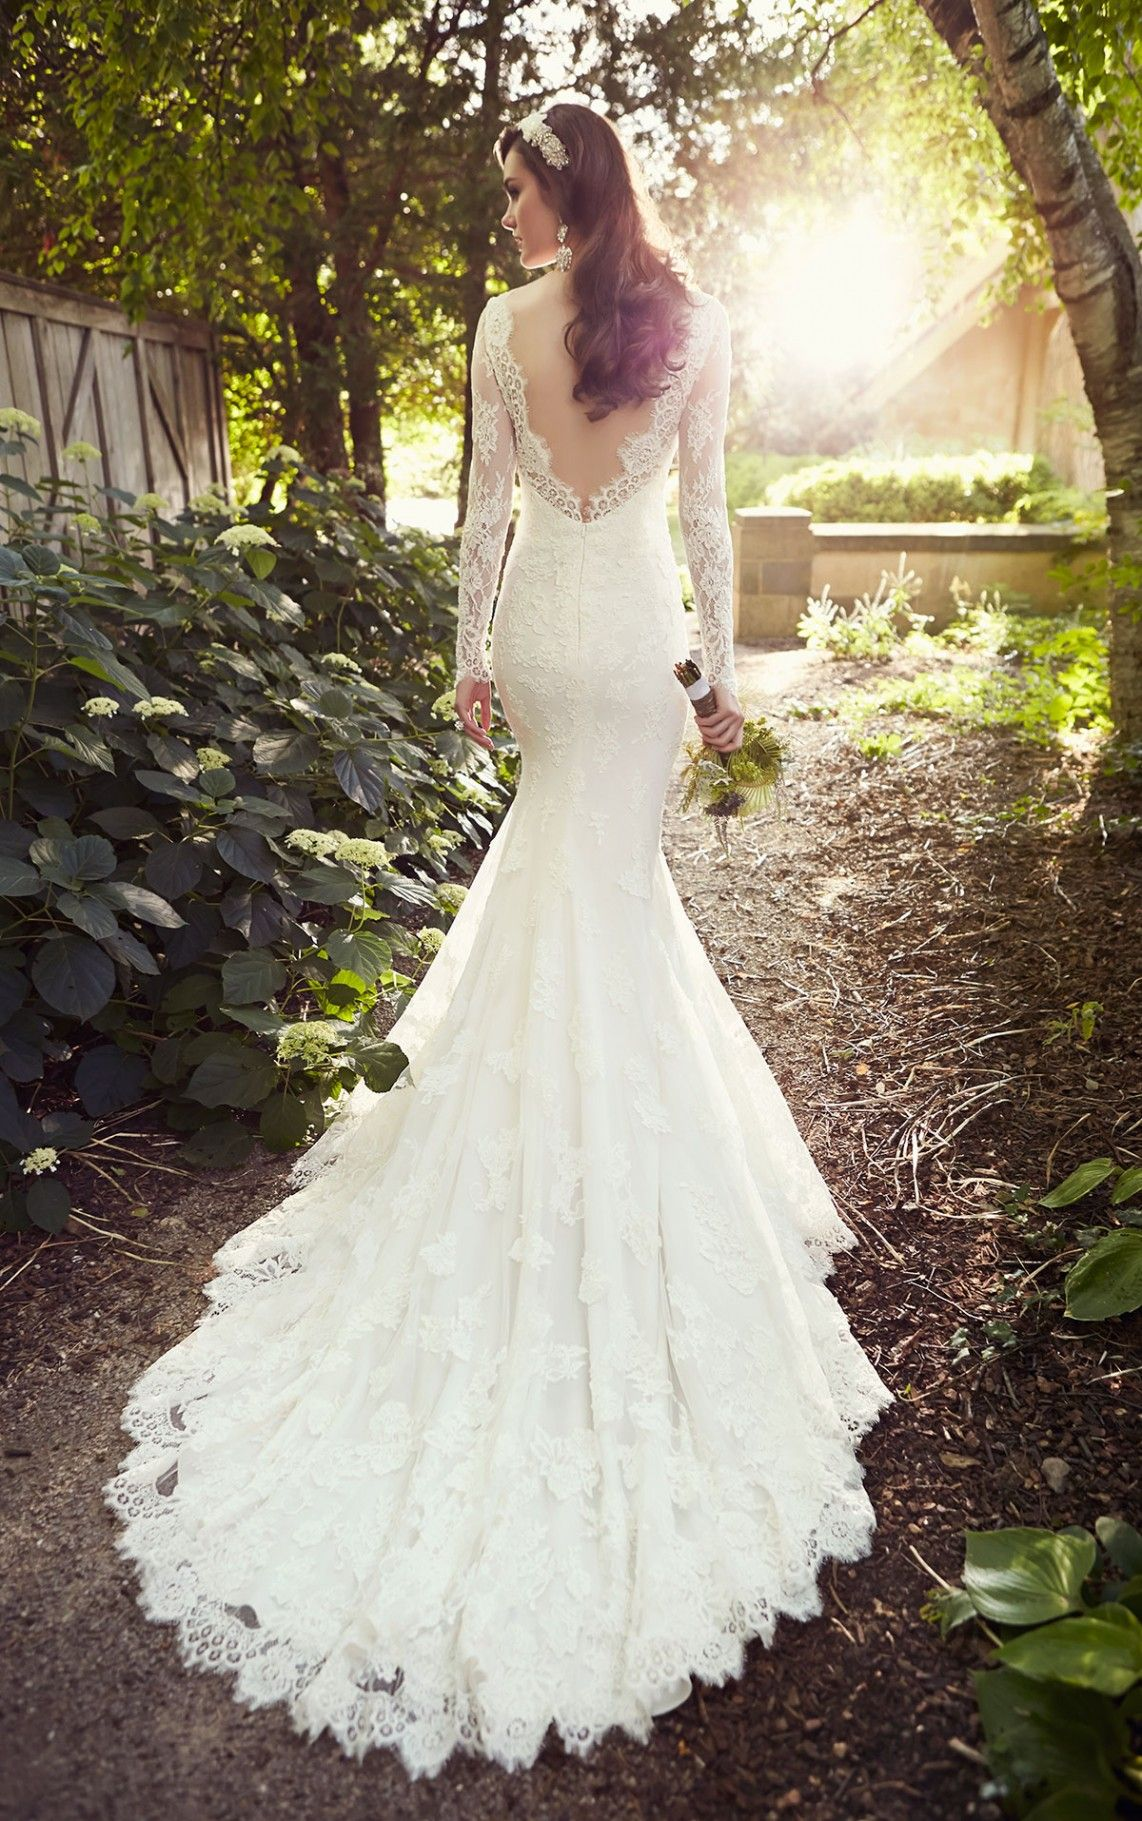 Luxurious fabric, authentic Swarovski crystals and diamantés, sexy open back details, anda superb fit with couture finishing, the 2015 bridal collection of Essense of Australia wedding dressesmakes your wedding truly memorable. Take a look and happy pinning!